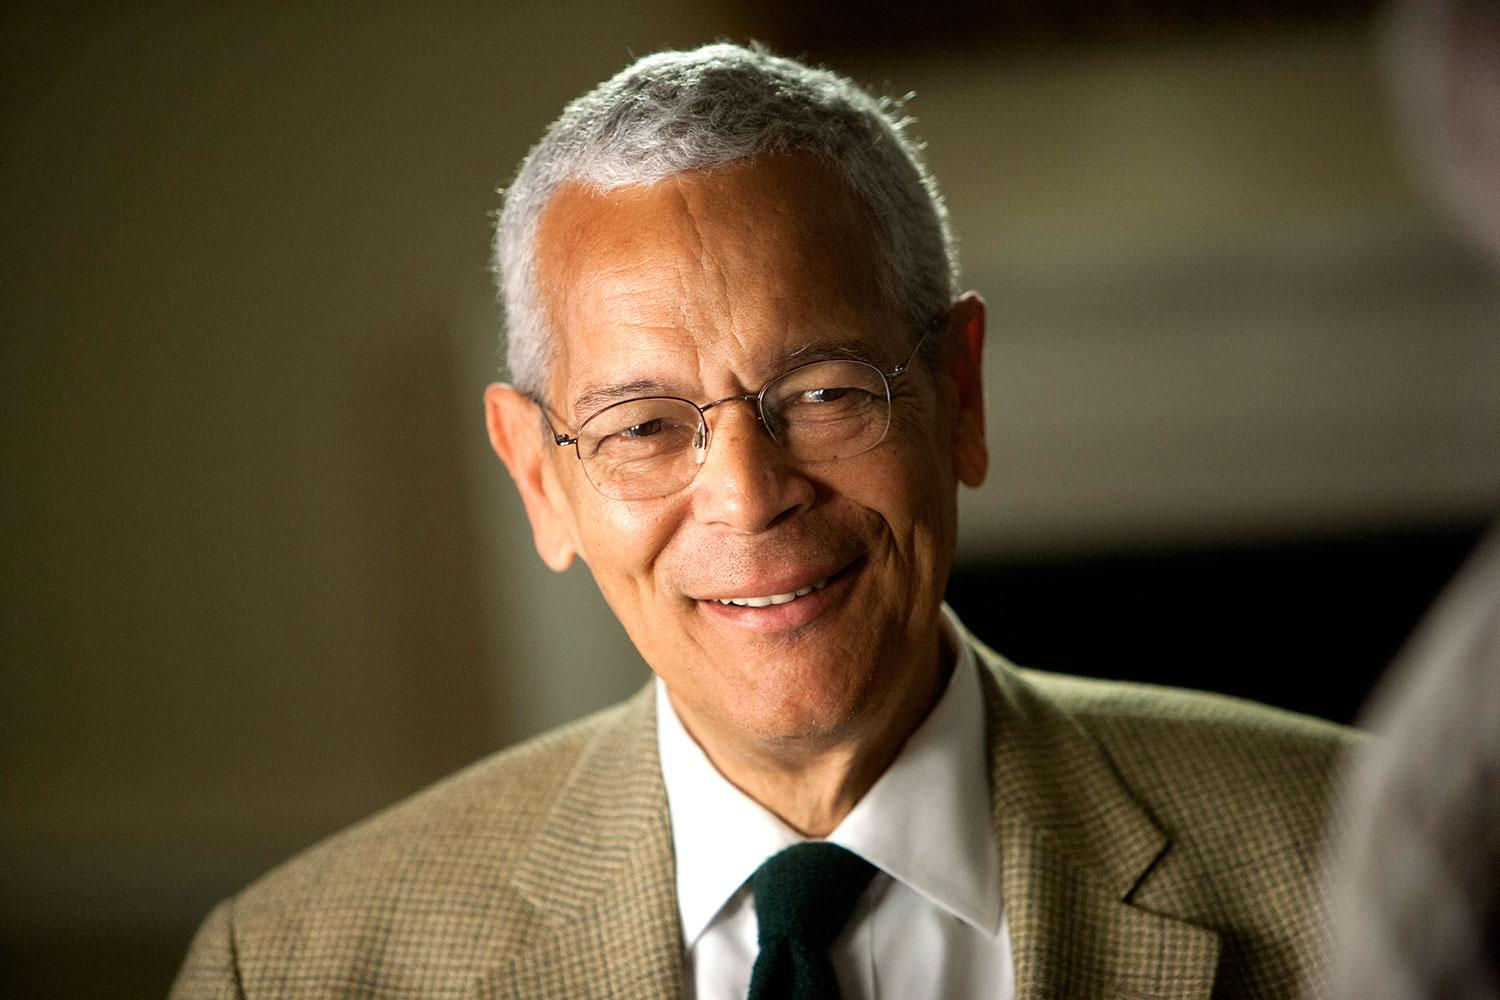 The late civil rights icon Julian Bond taught at UVA from 1992 to 2012. (Contributed photo)